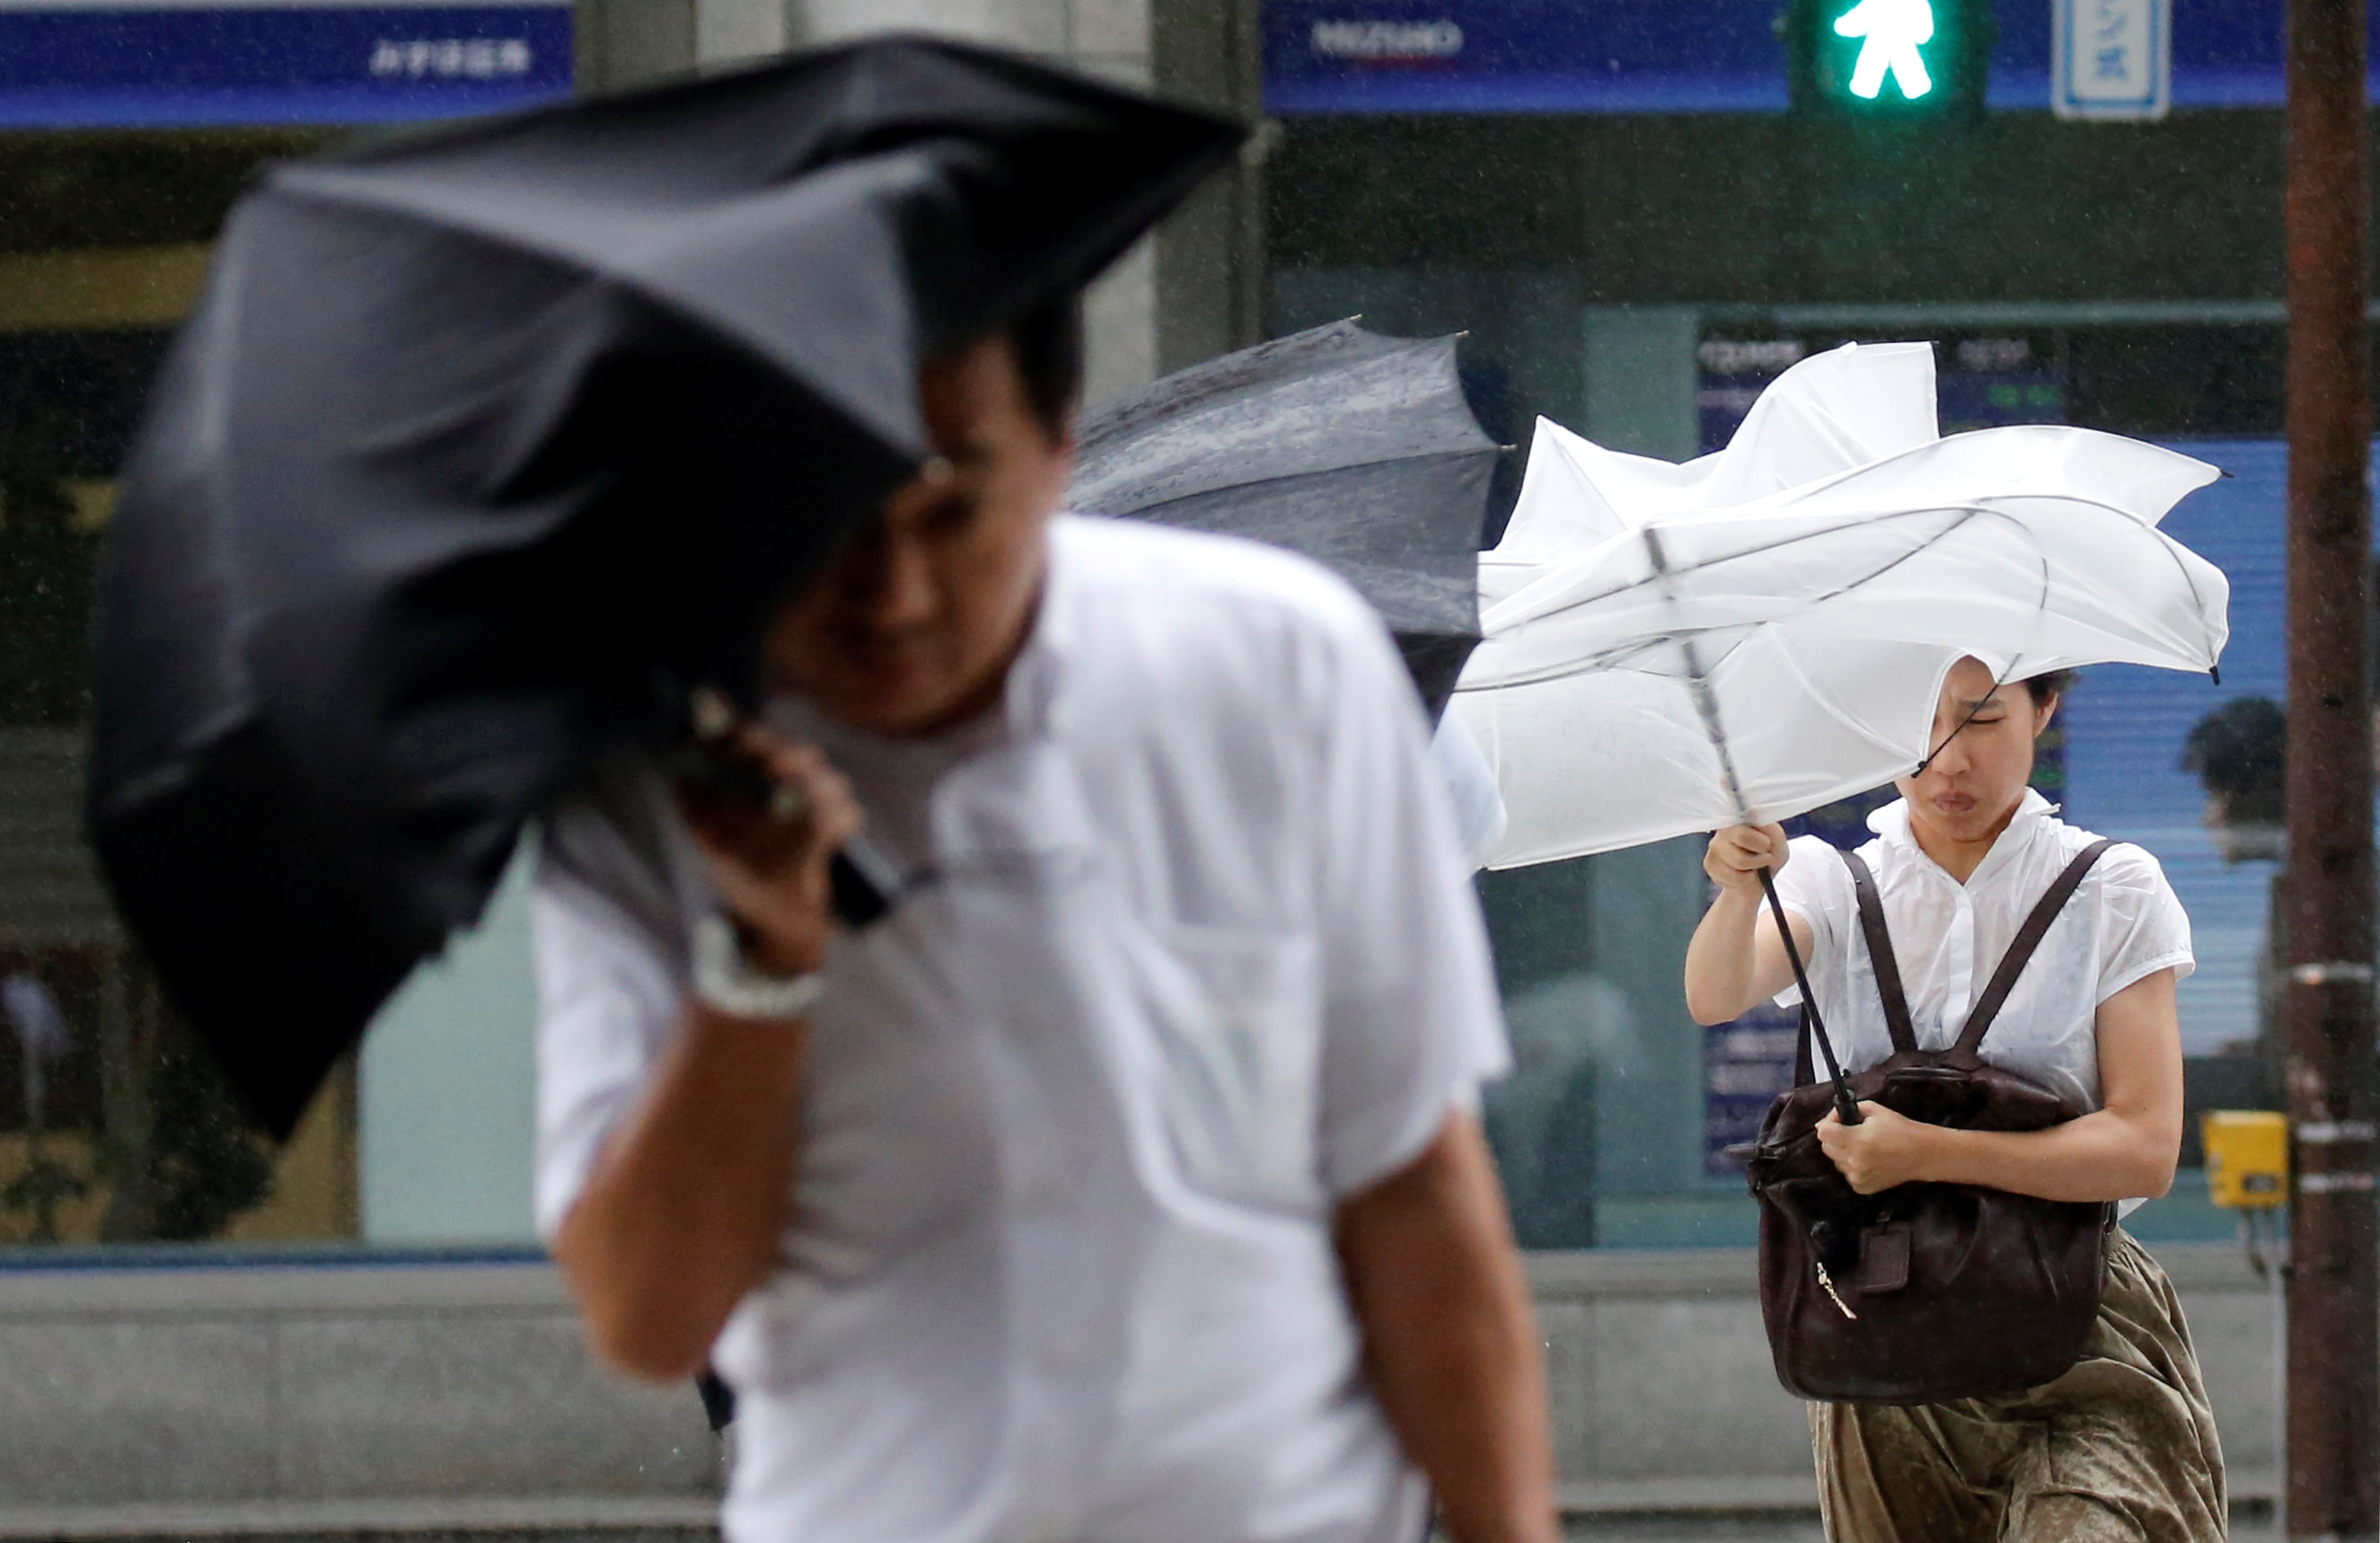 Passersby using an umbrella struggle against a heavy rain and wind as Typhoon Shanshan approaches Japan's mainland in Tokyo